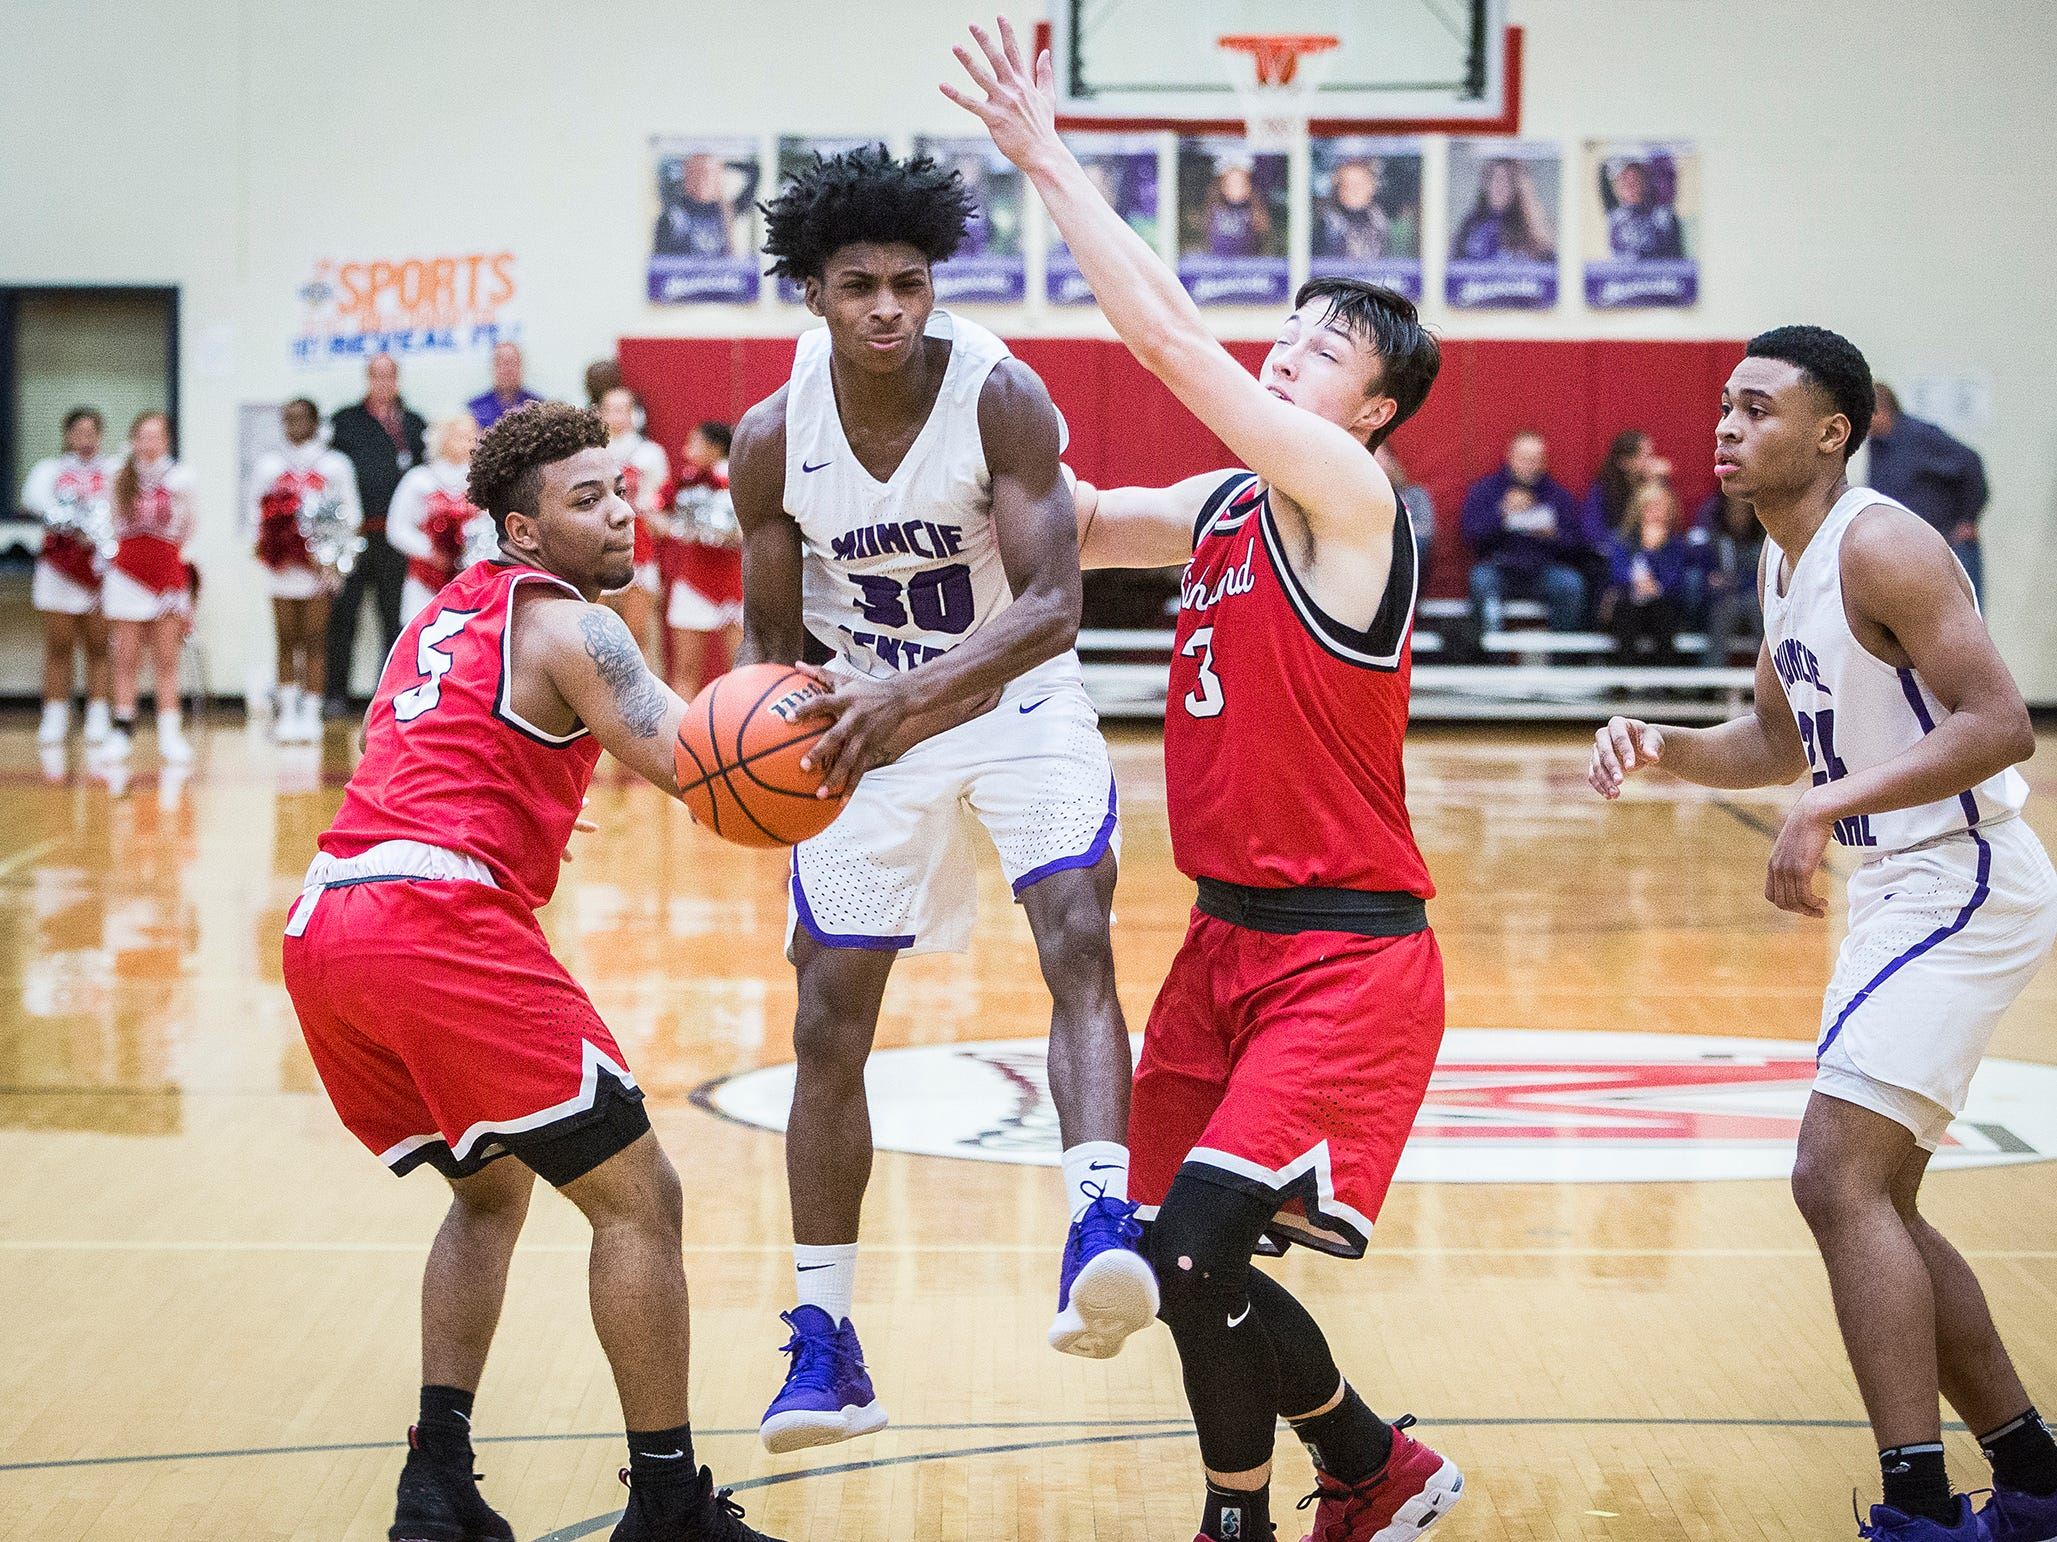 Central's Kamrein Jackson struggles past Richmond's defense during their game at Southside Middle School Friday, Jan. 11, 2019.